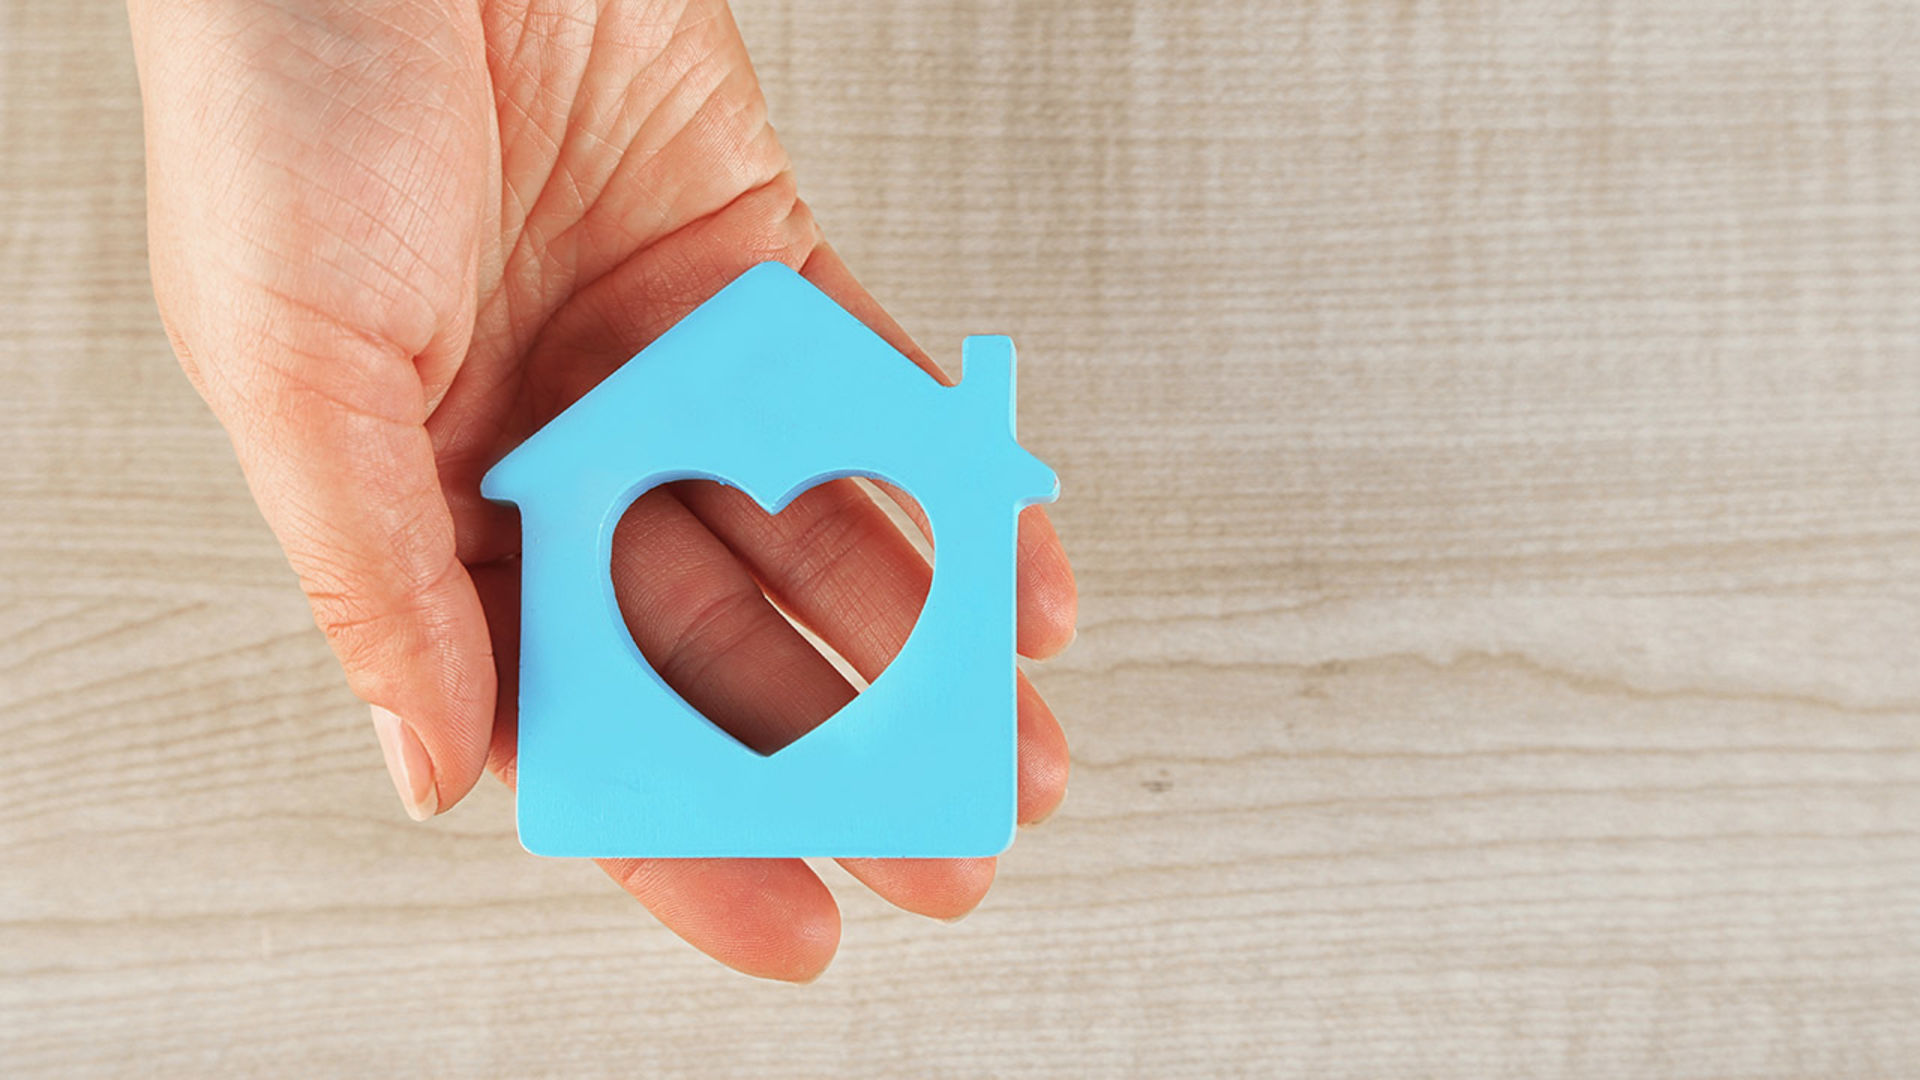 SELLERS: HOW AND WHEN TO USE HOMEBUYER INCENTIVES